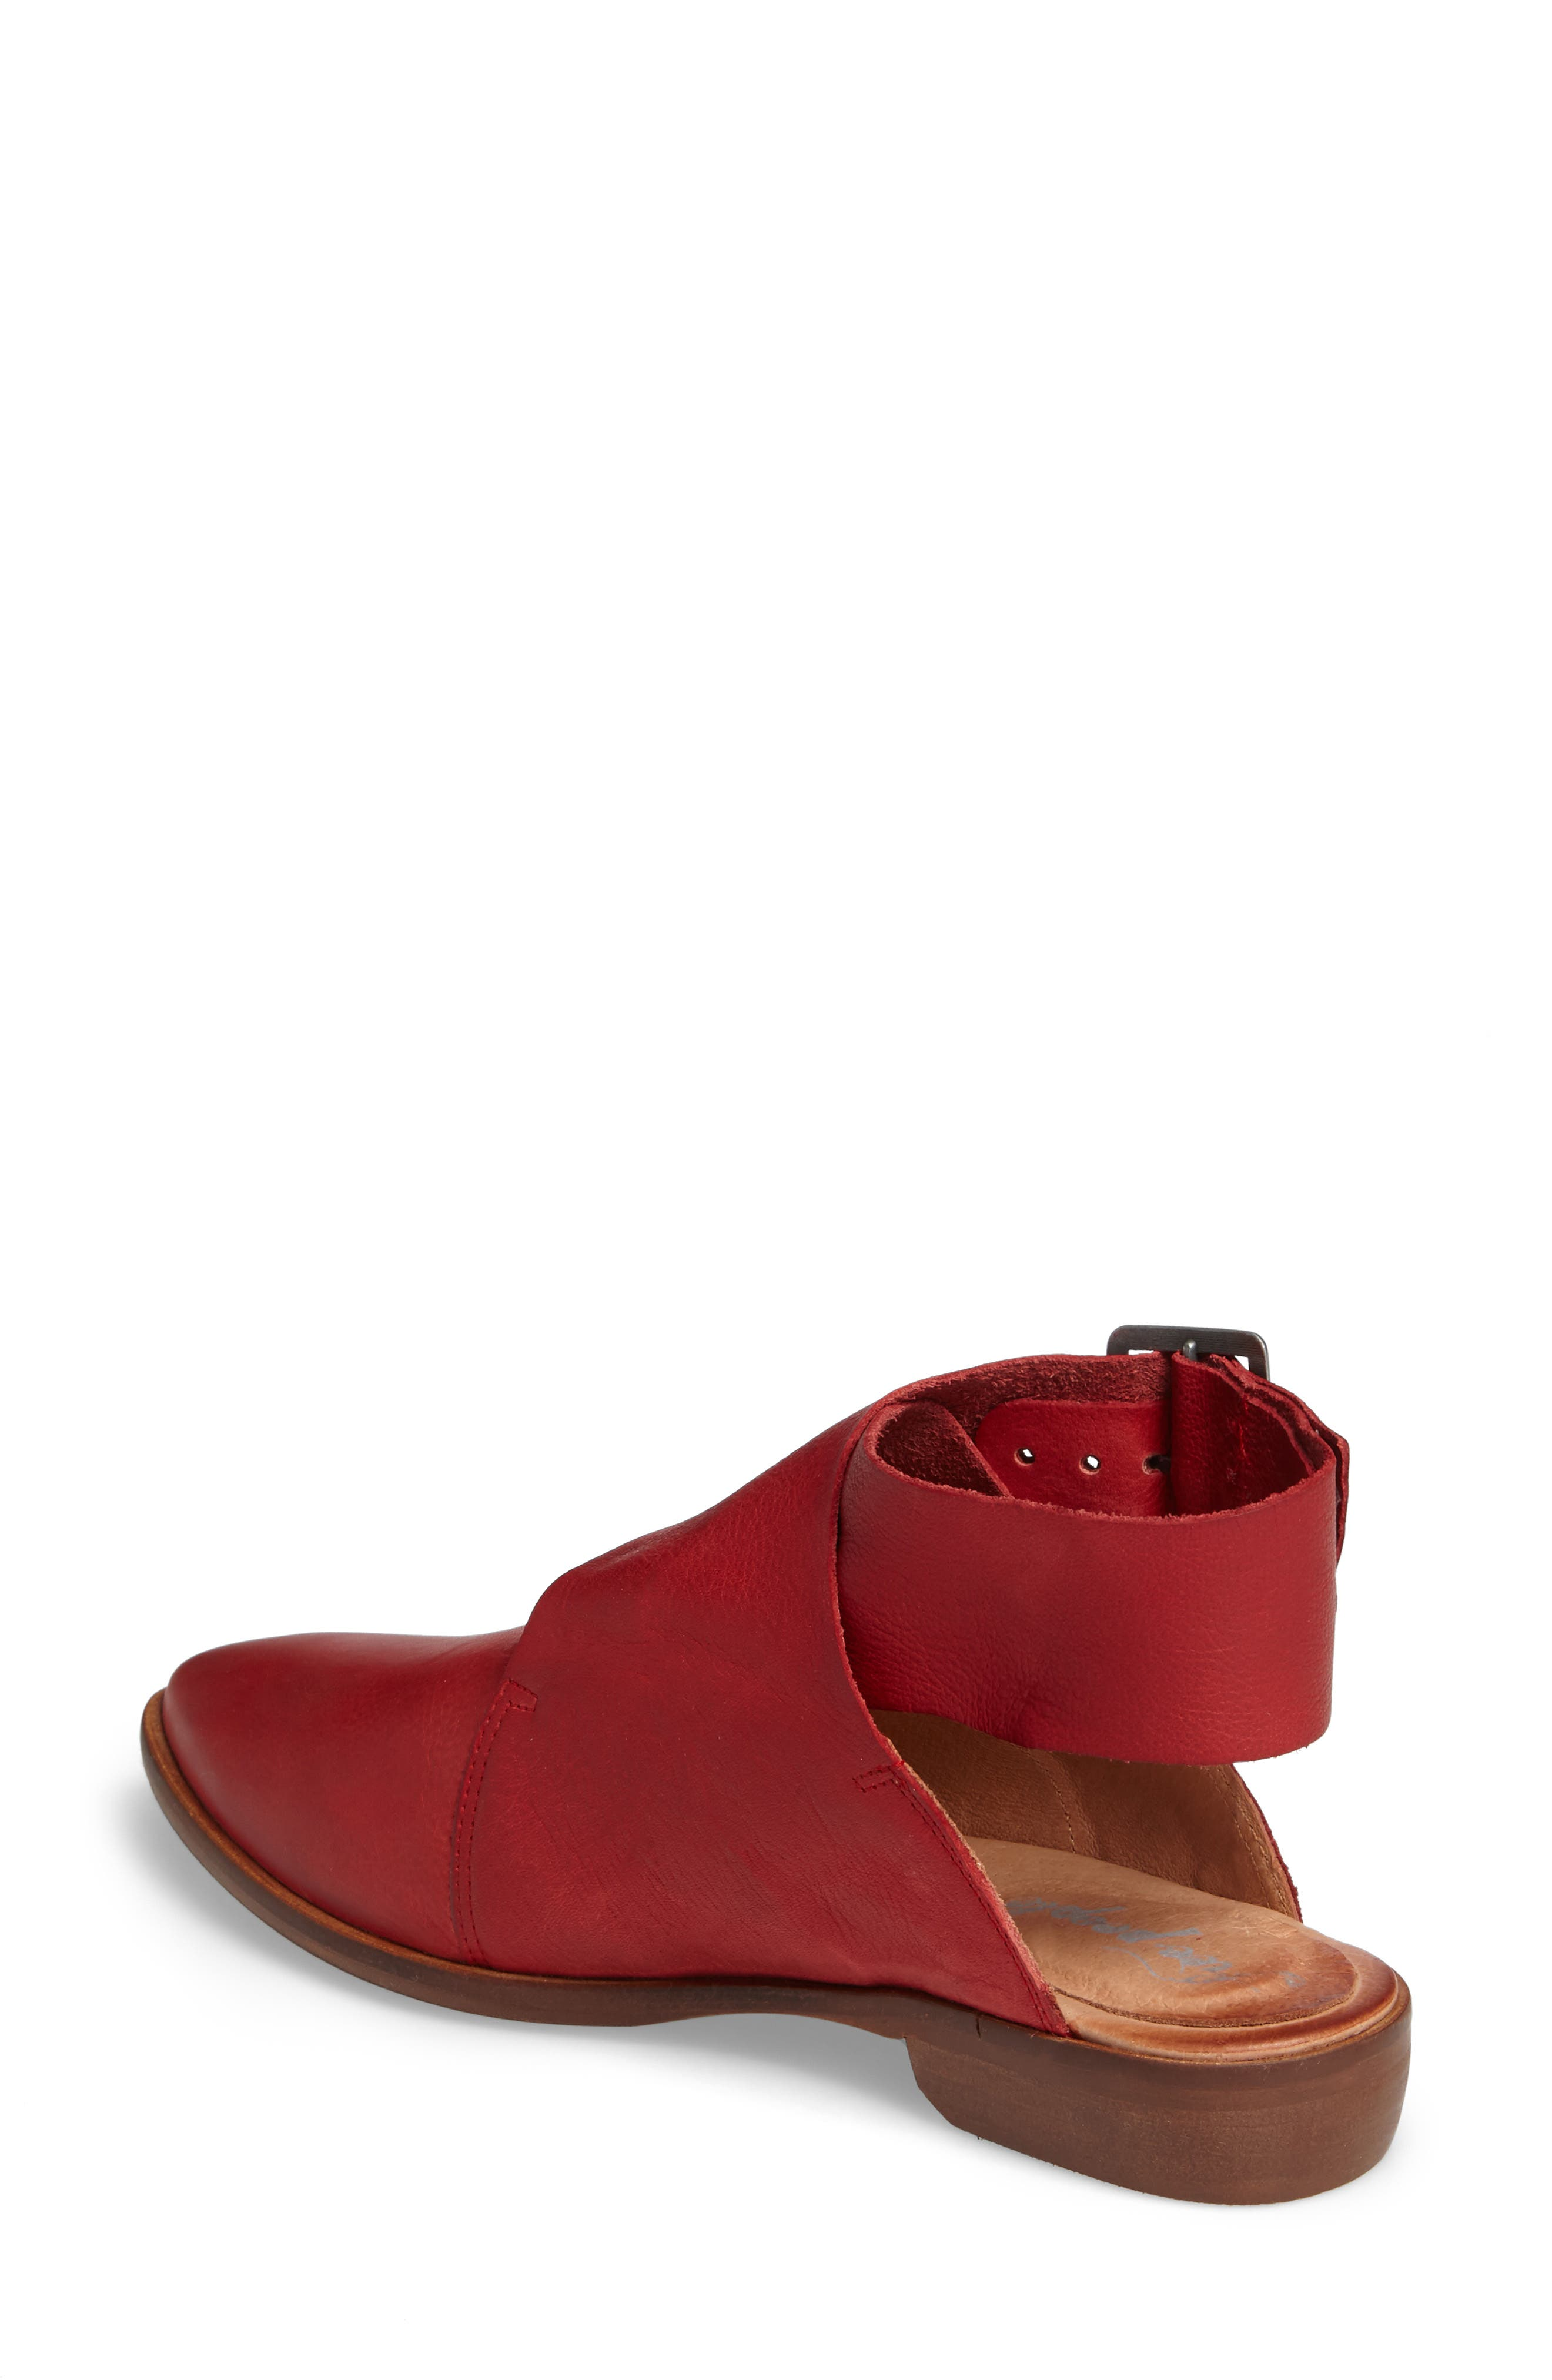 Bryce Buckle Wrap Flat,                             Alternate thumbnail 2, color,                             Red